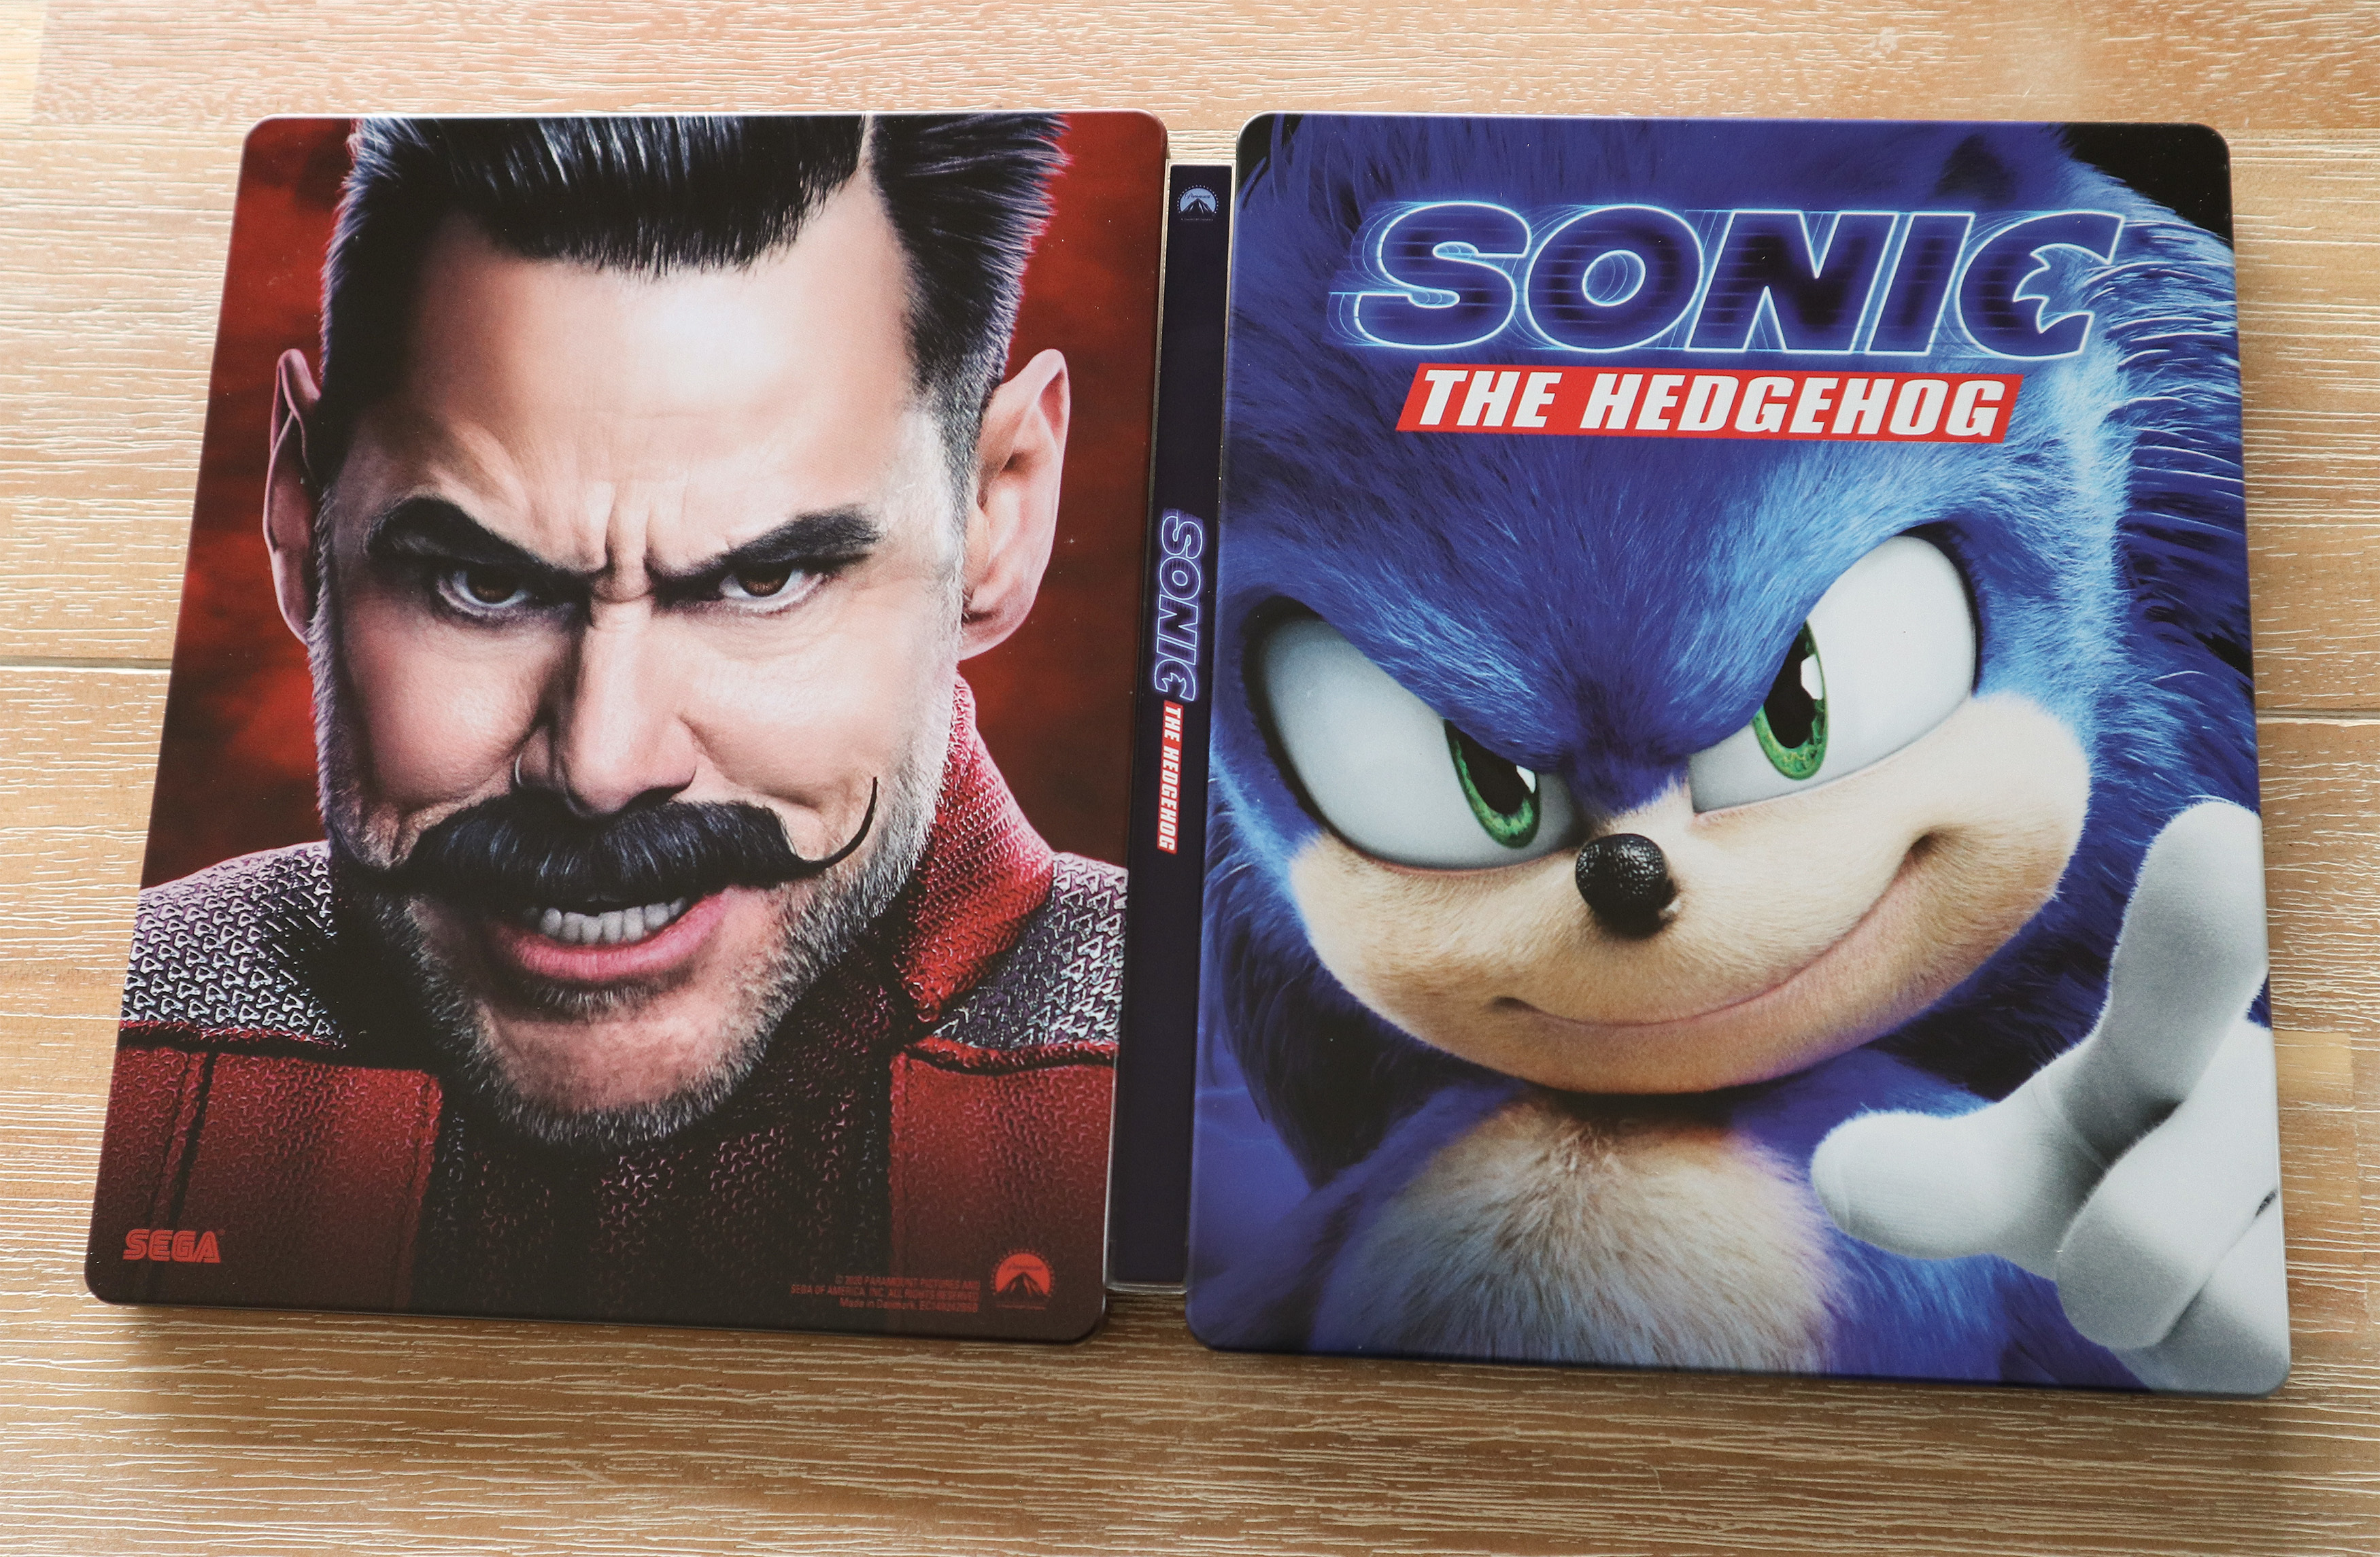 Sonic the Hedgehog 4K Ultra Hong Kong steelbook ソニック・ザ・ムービー スチールブック